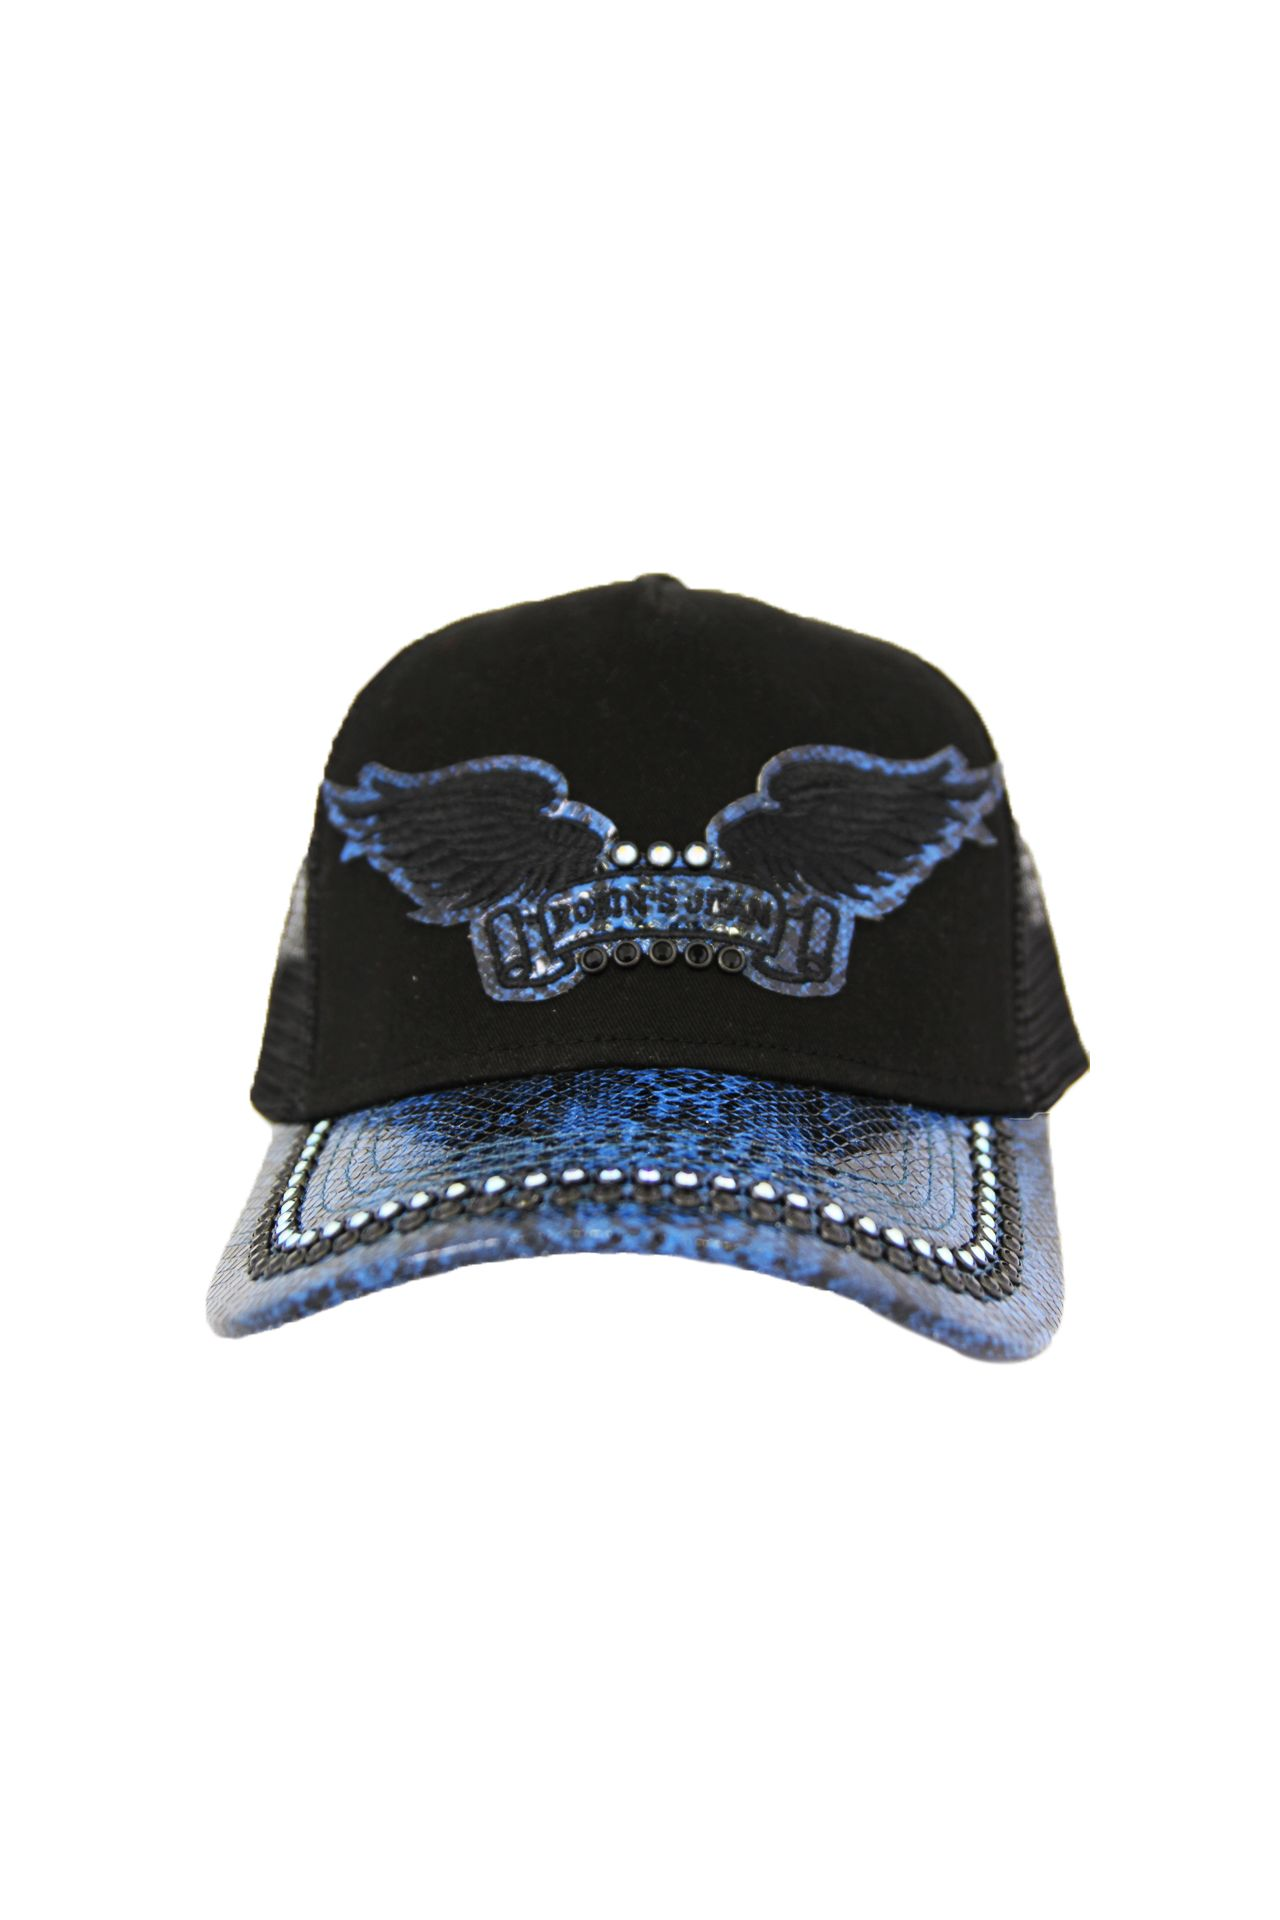 BLACK TWILL CAP WITH BLUE VISOR AND CRYSTALS